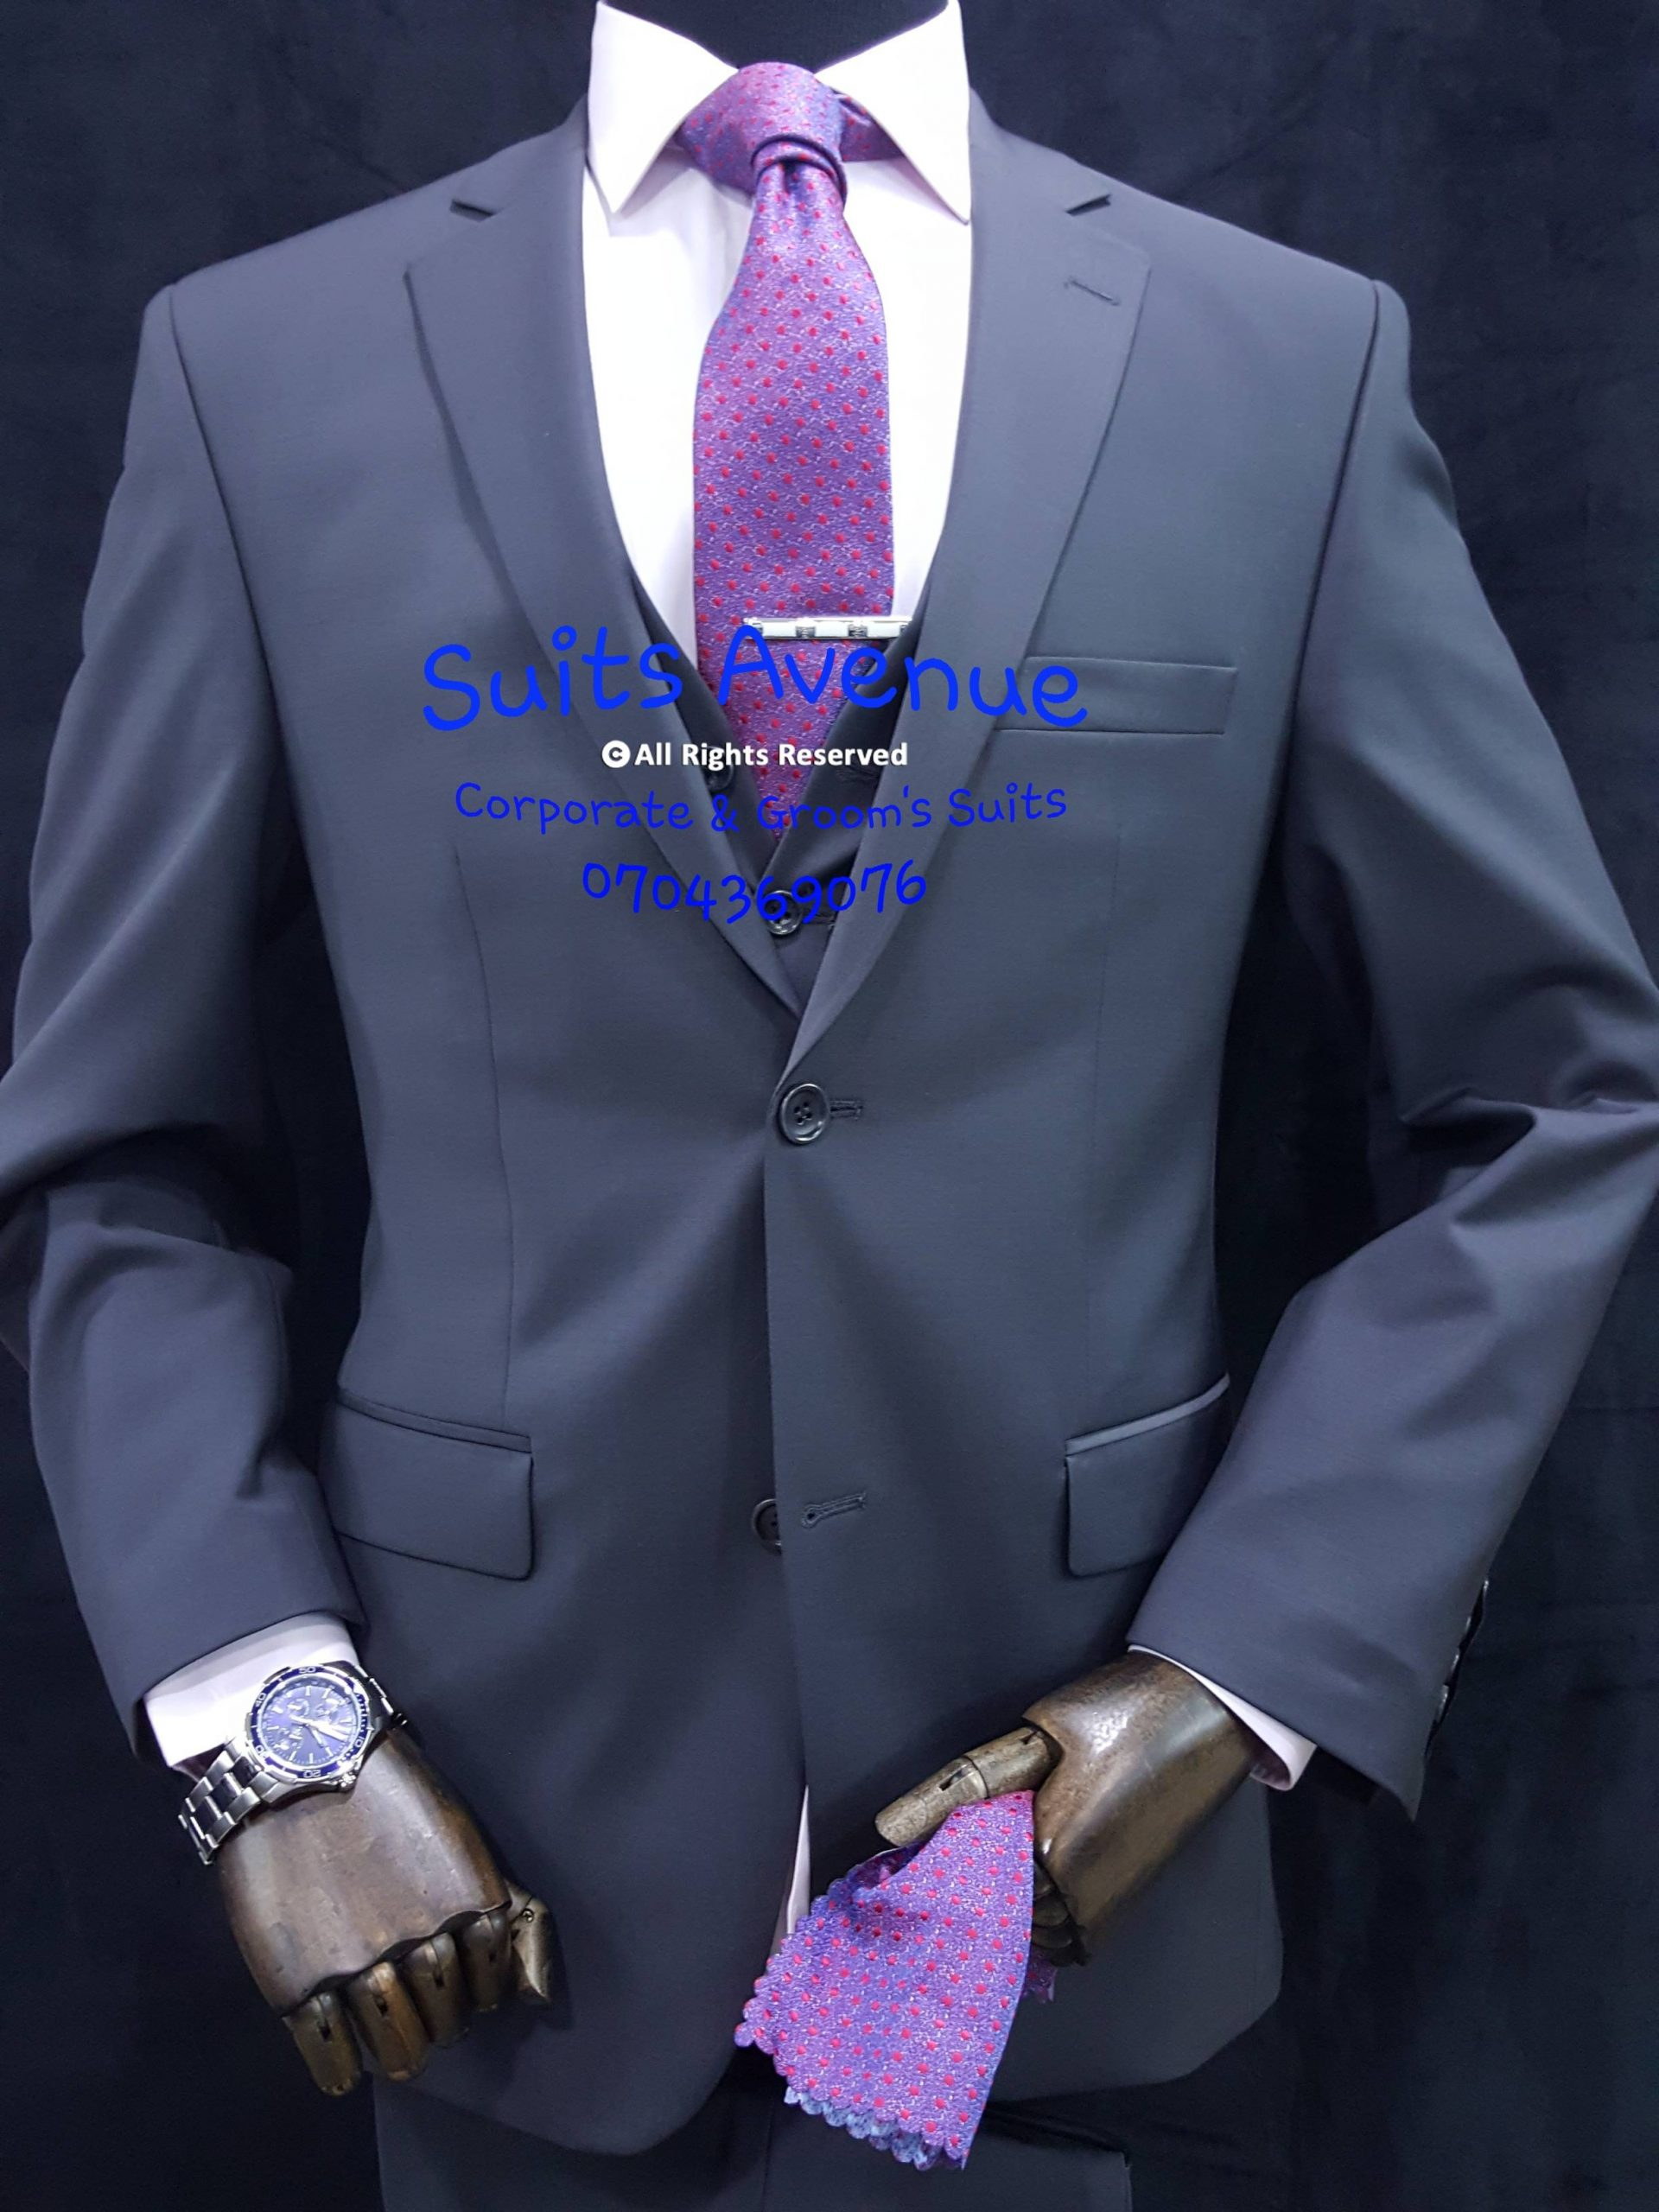 Imported suits from Italy and Turkey